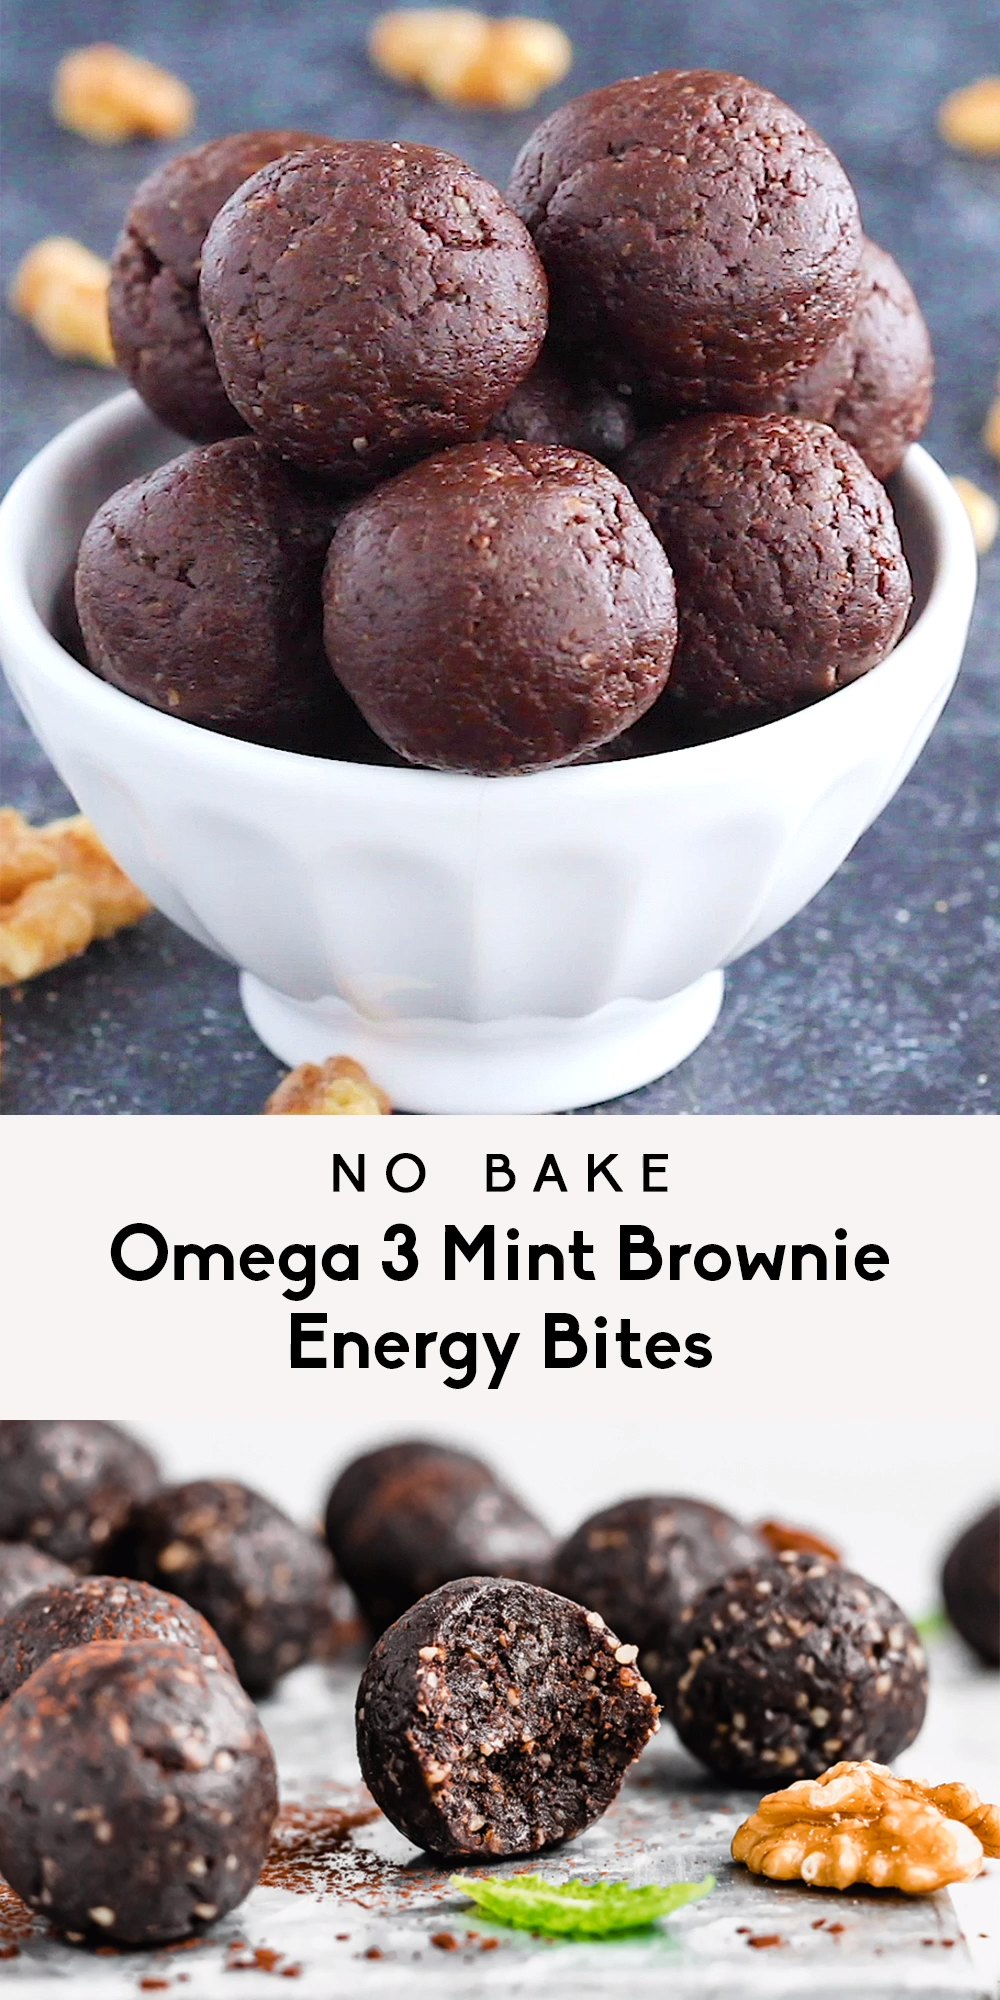 Photo of No Bake Omega 3 Mint Brownie Energy Bites,  #Bake #Bites #Brownie #Energy #Mint #Omega